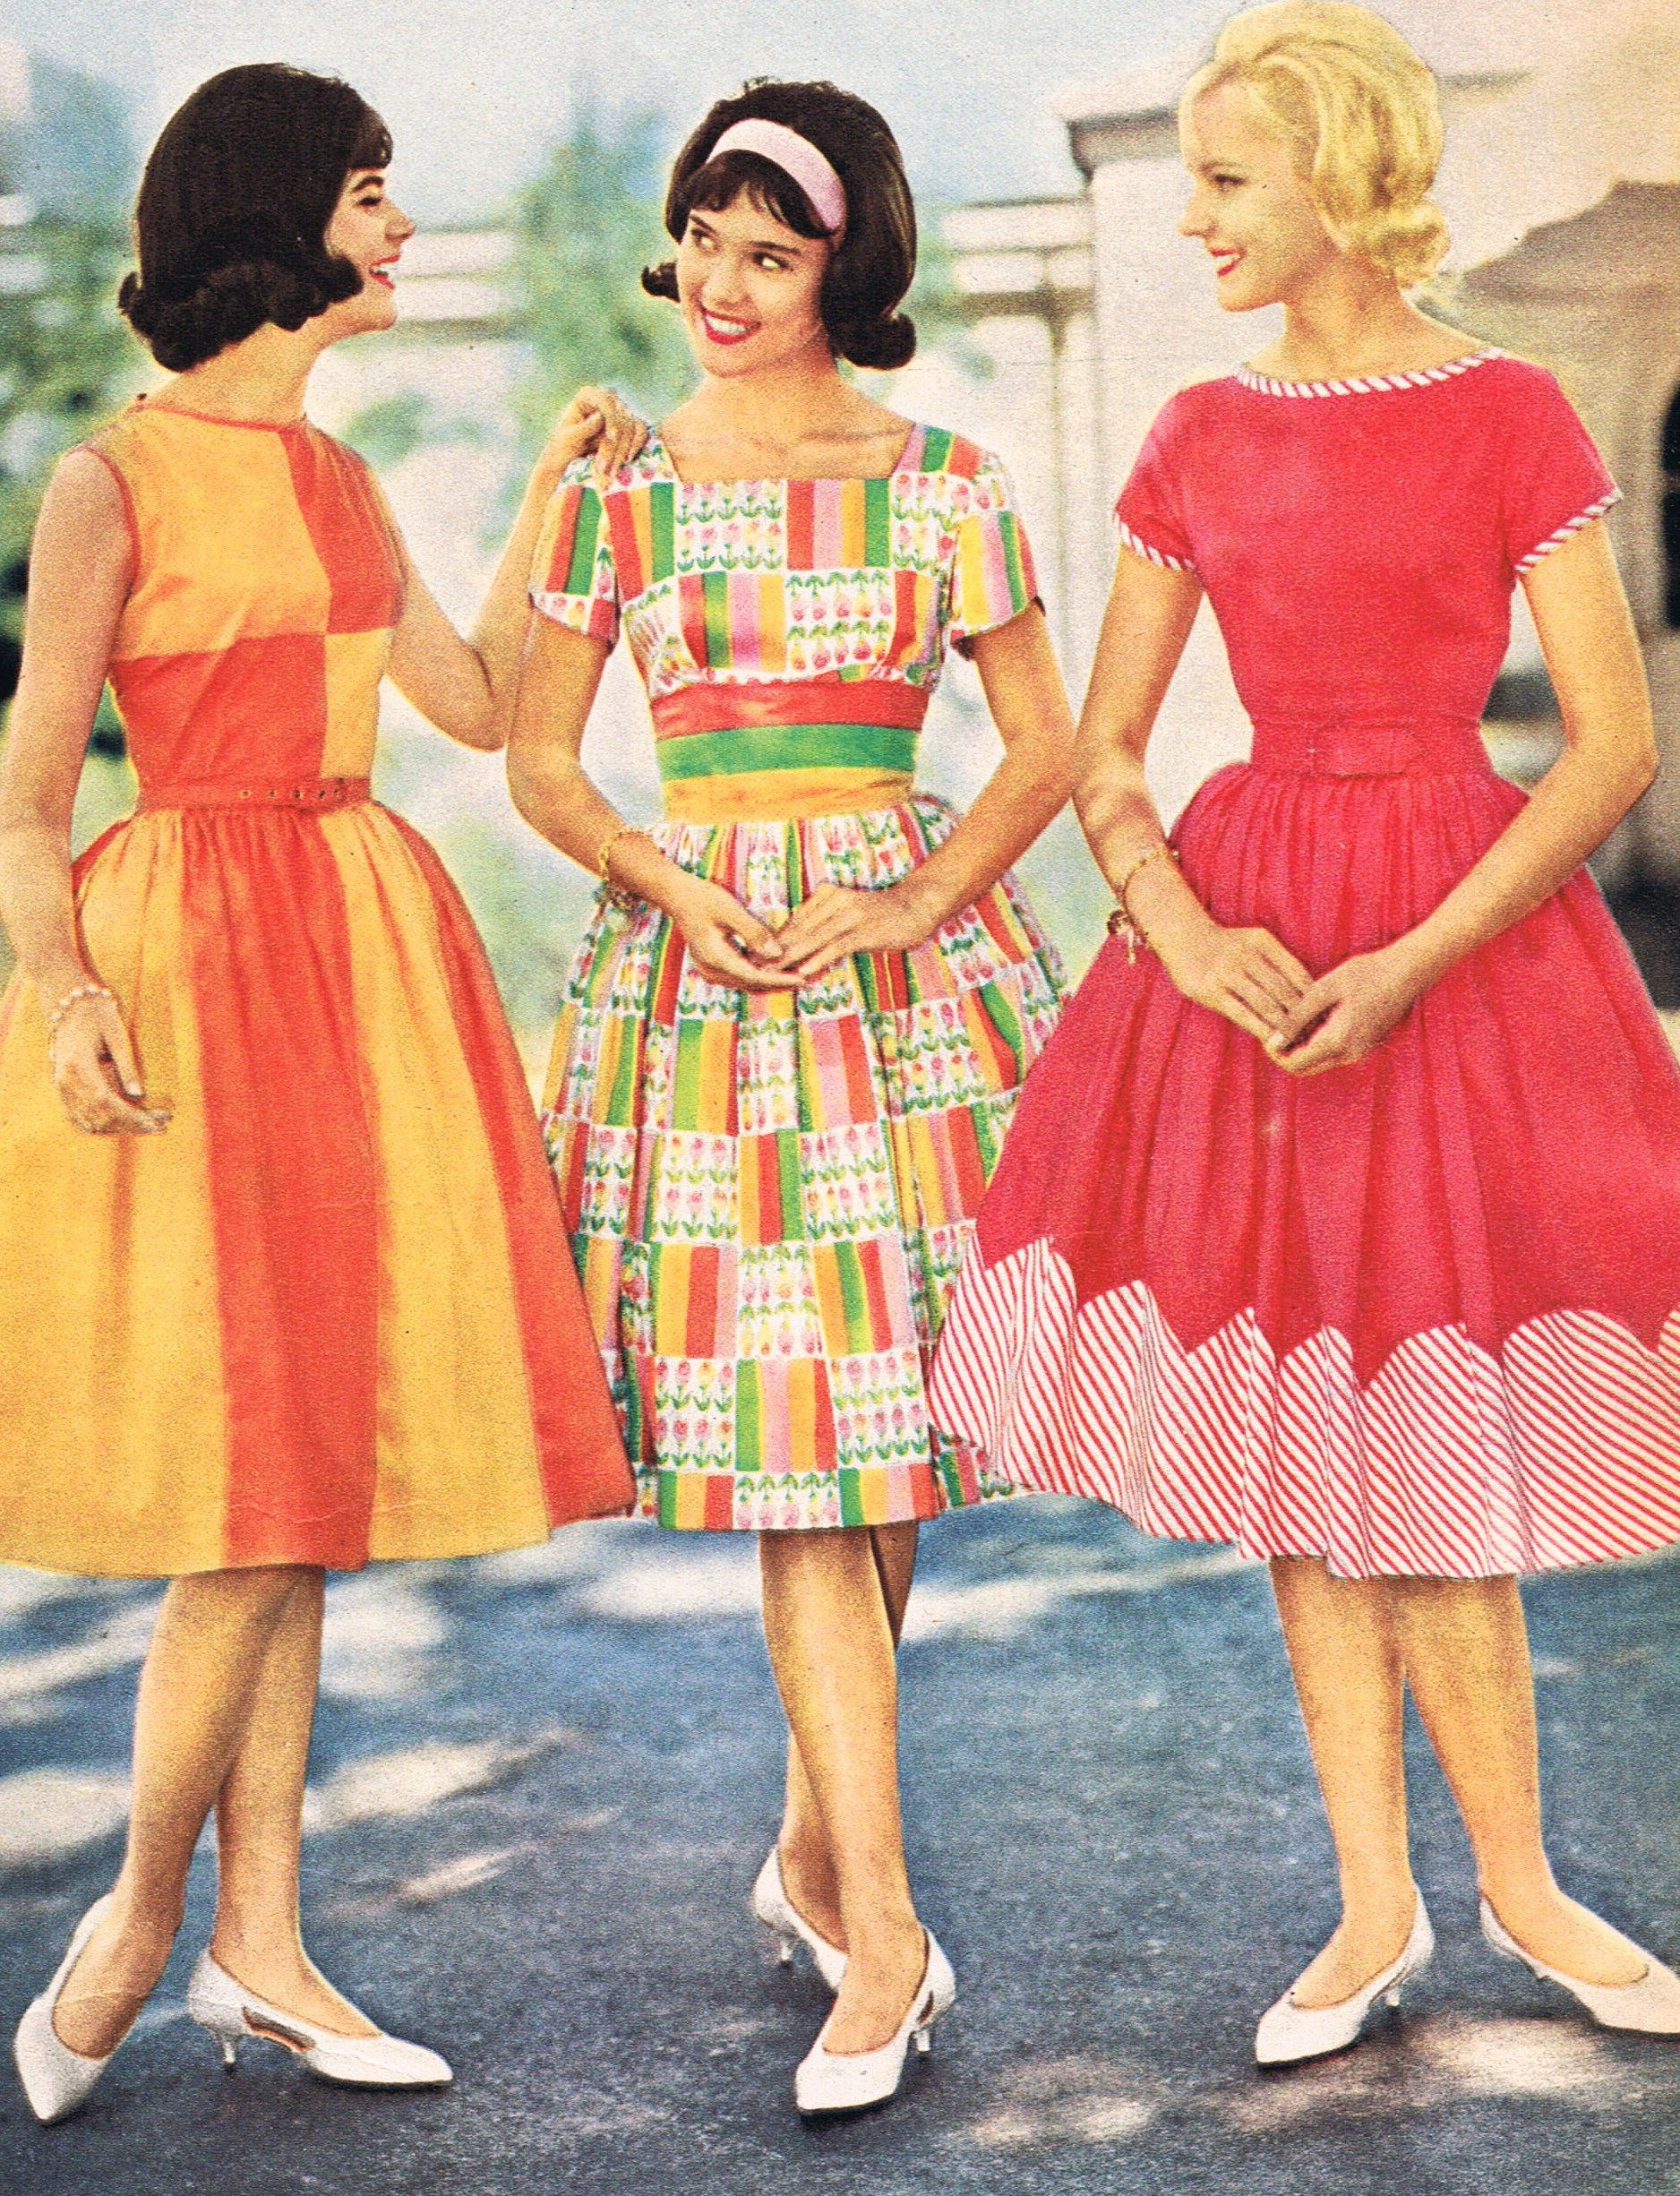 teen fashion, Spiegel 1962